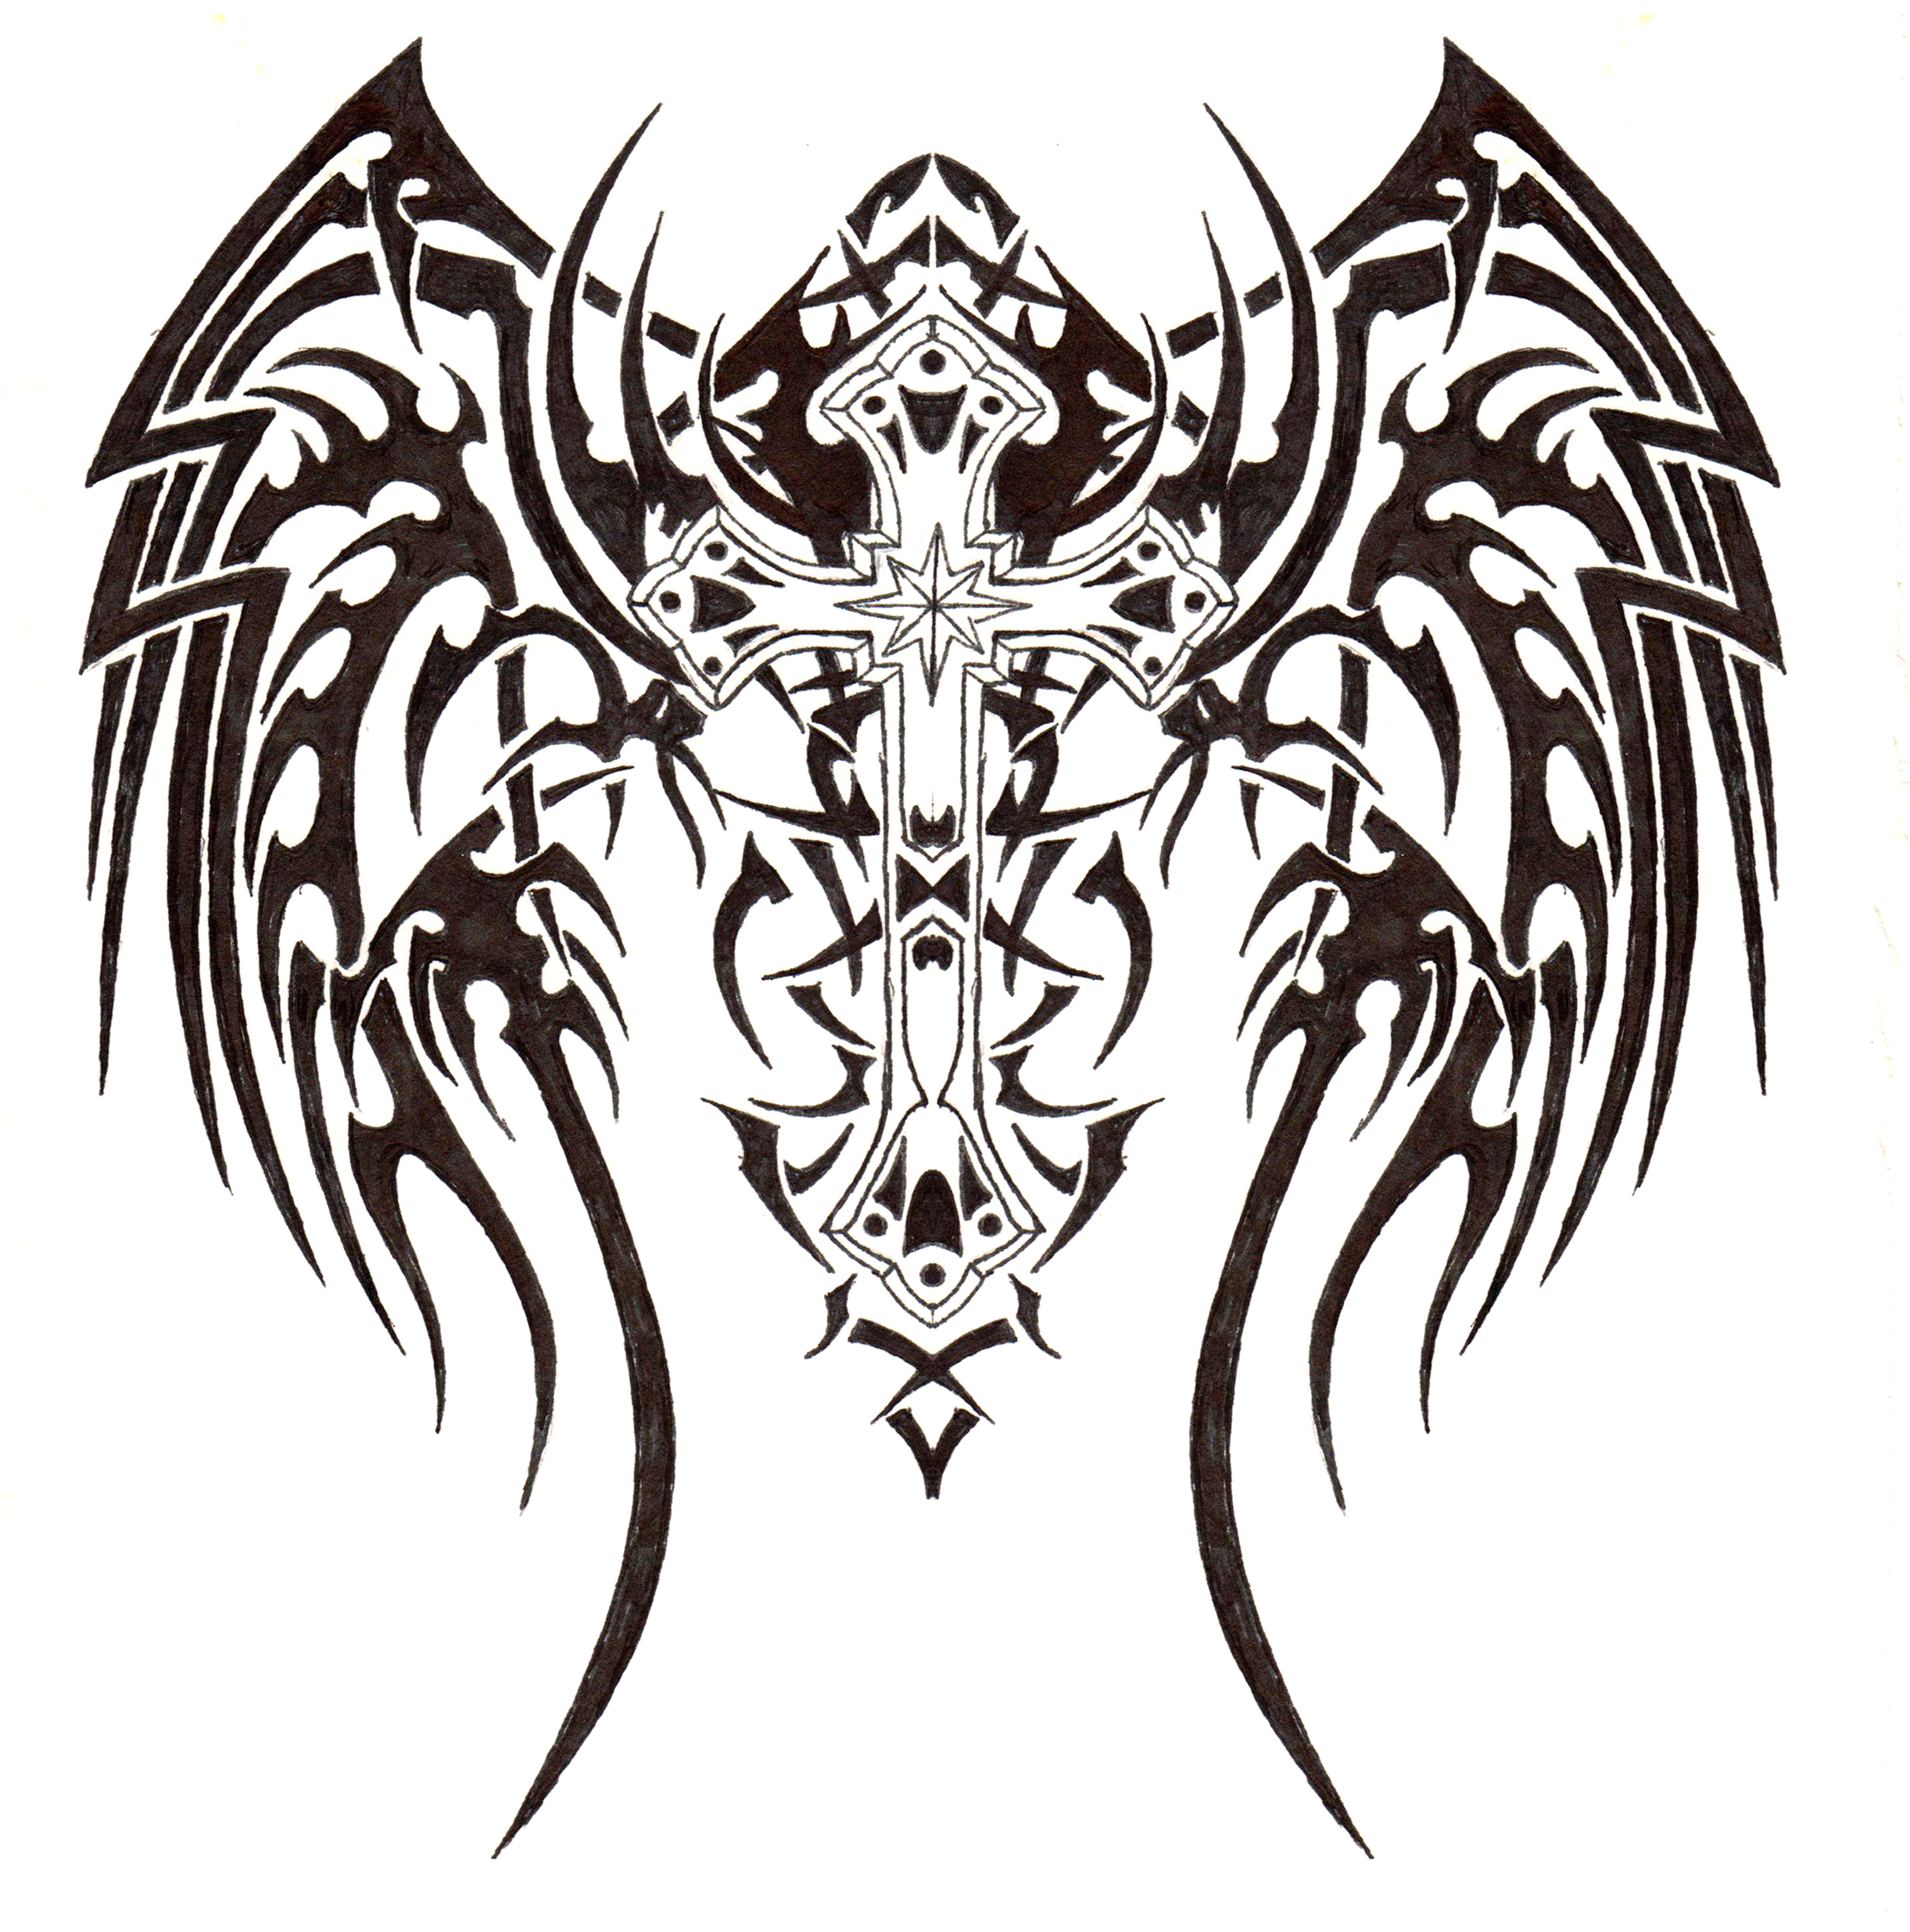 2443x2471 Tribal Cross W Angel Wings By Ens Prometheus 2d Monochromelack